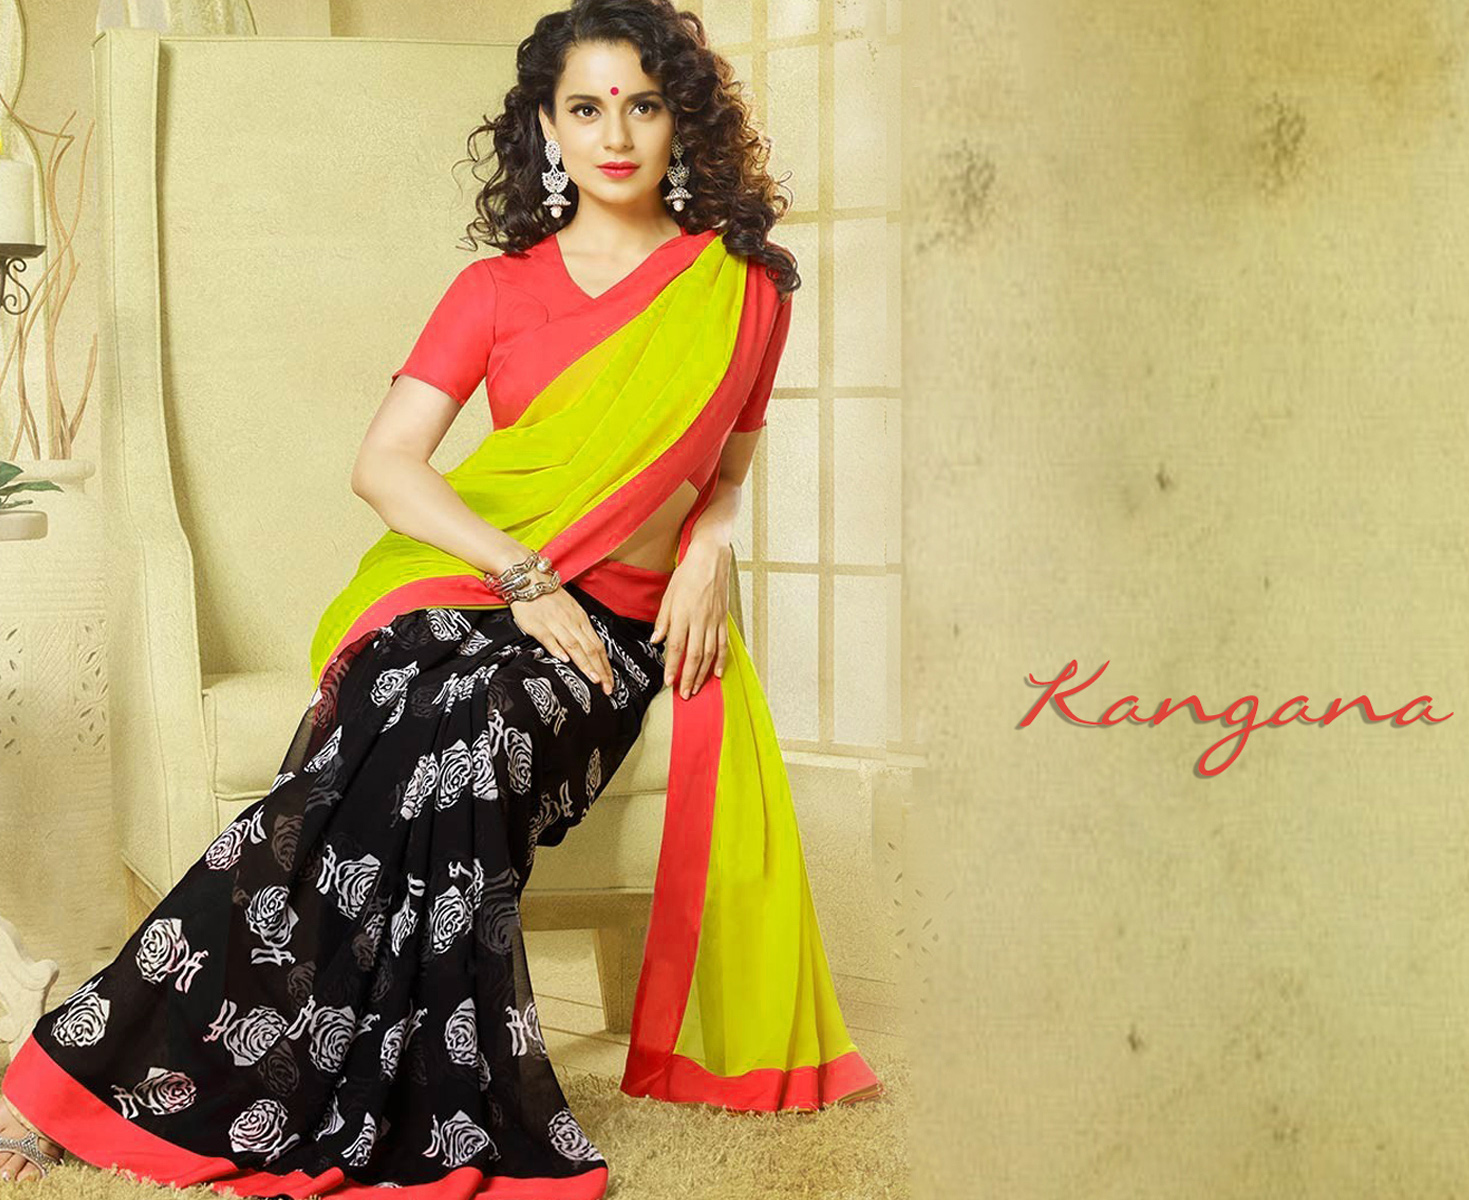 Kangana Ranaut Images Wallpaper  Photo Pictures Pics Free Download